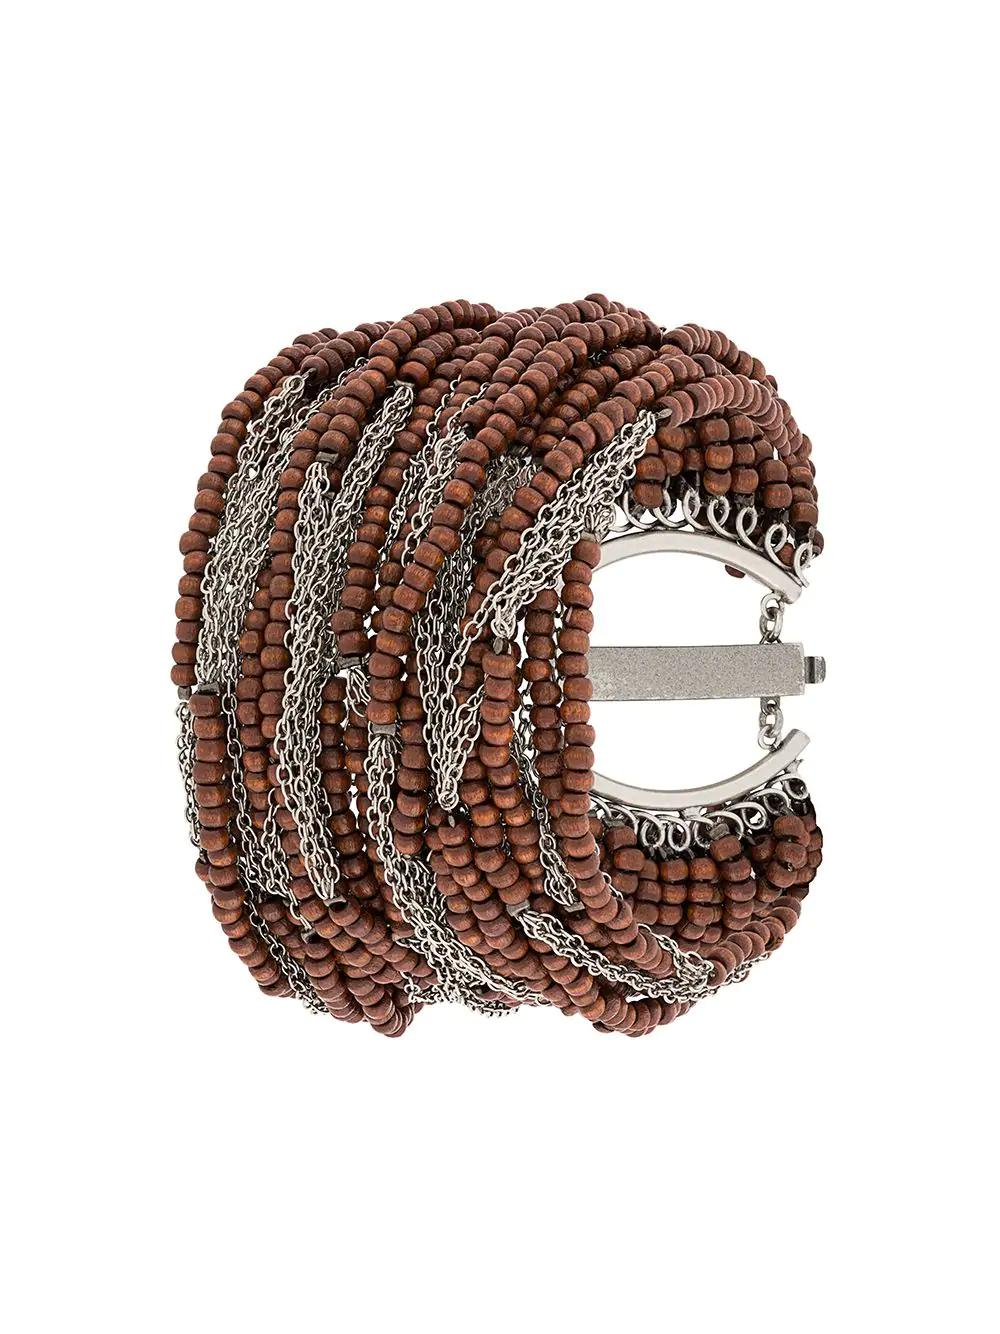 Marc Le Bihan Chains And Beads Bracelet - Brown